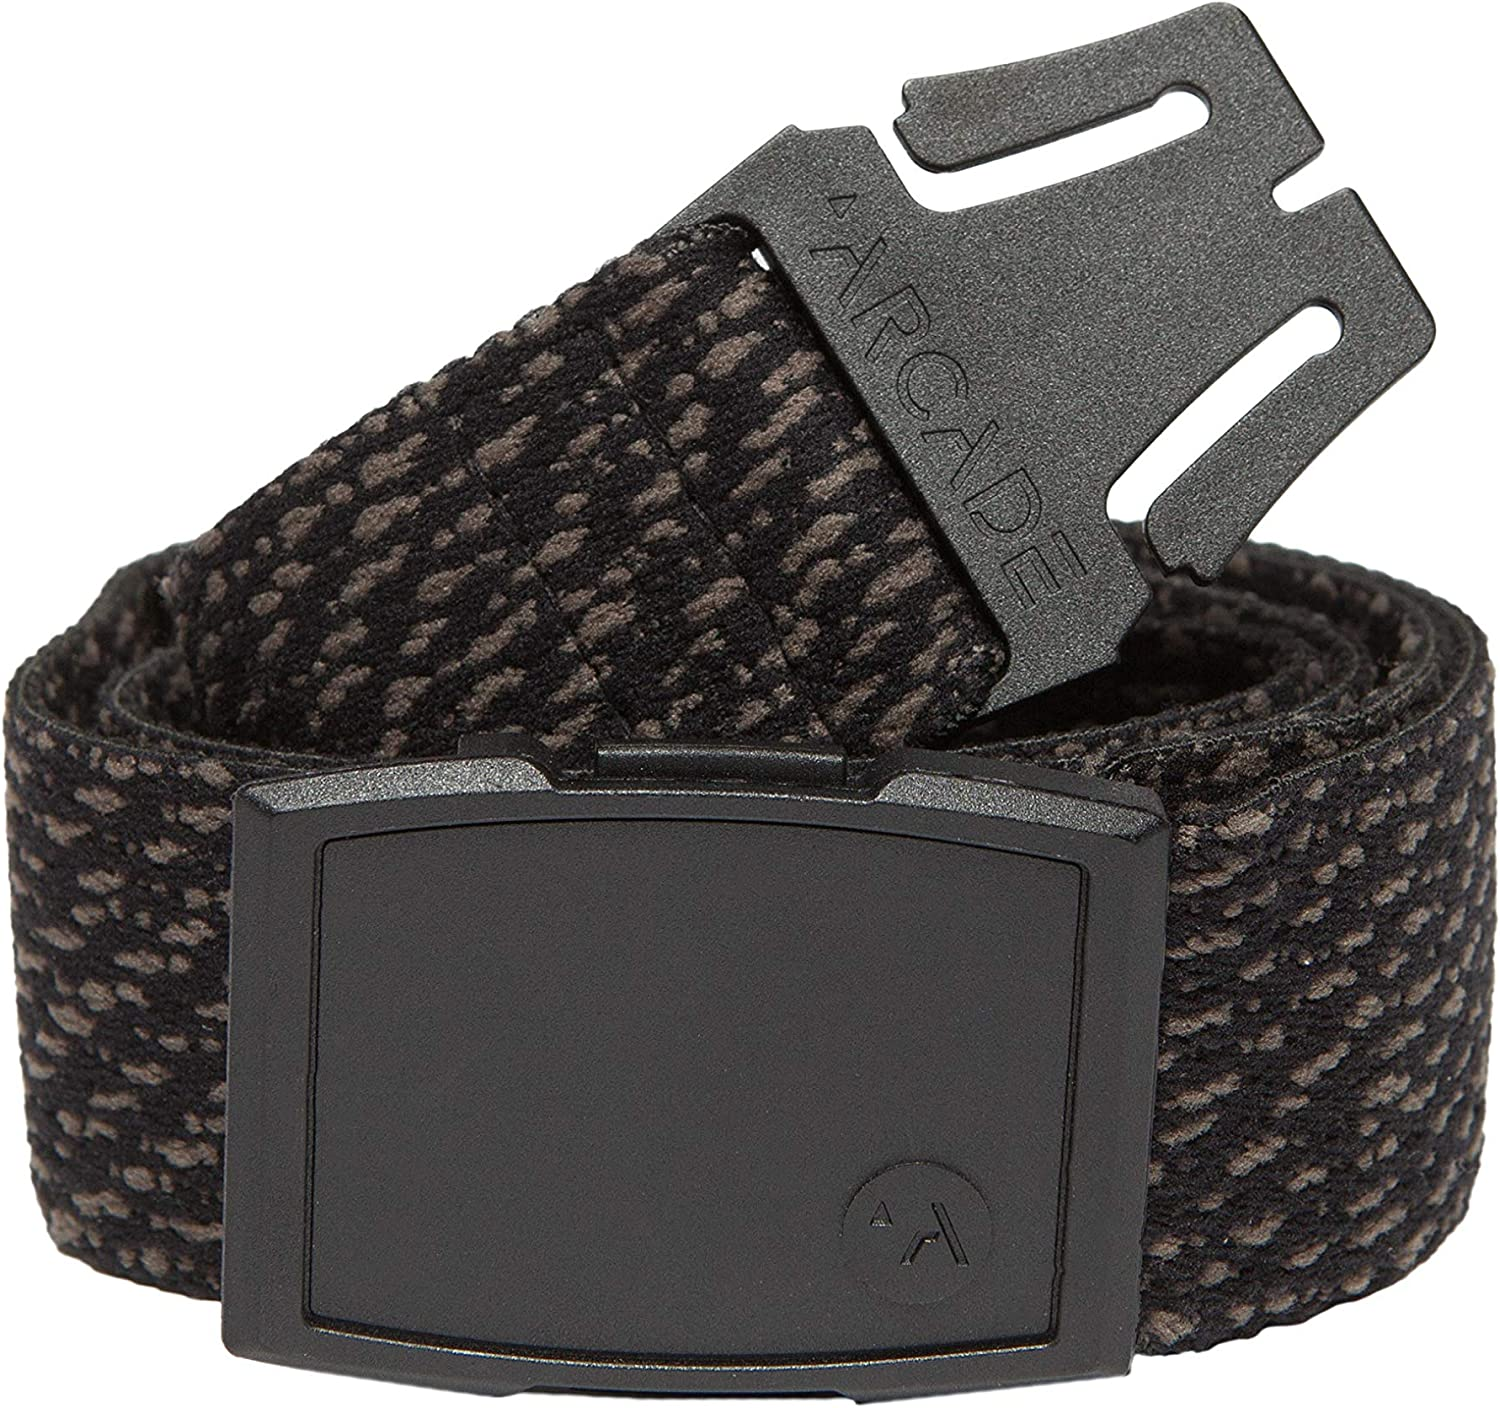 Flexible Elastic Webbing Arcade Belt Mens Capture Vision Belts Premium Buckle